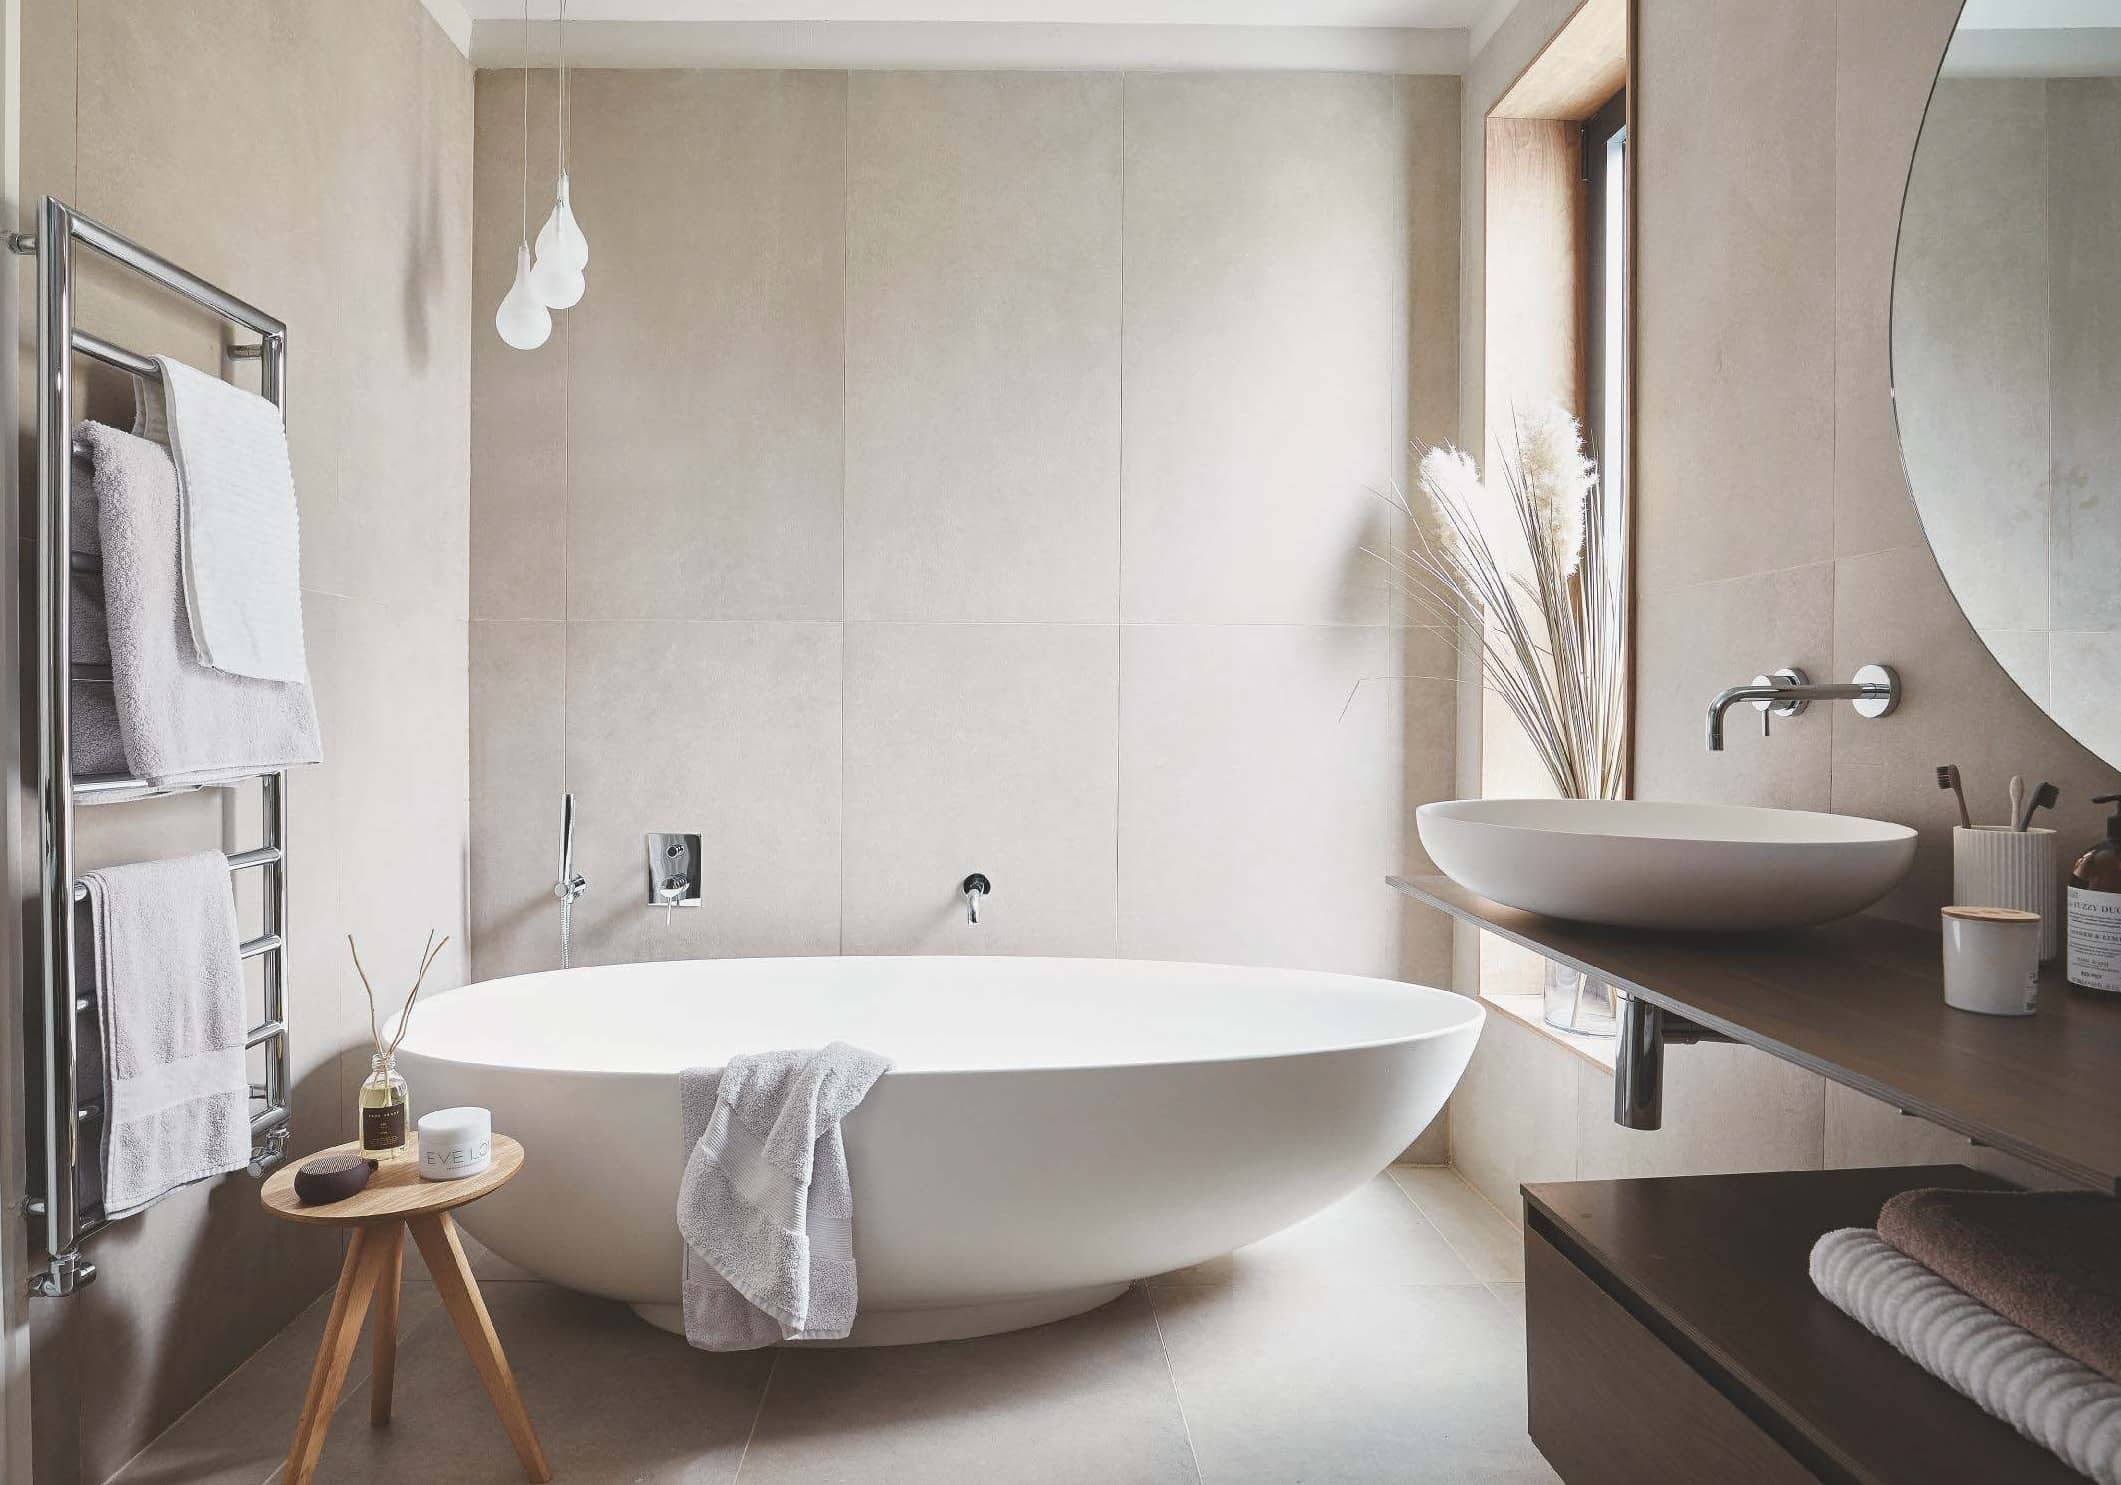 'This bathroom is all about relaxation'